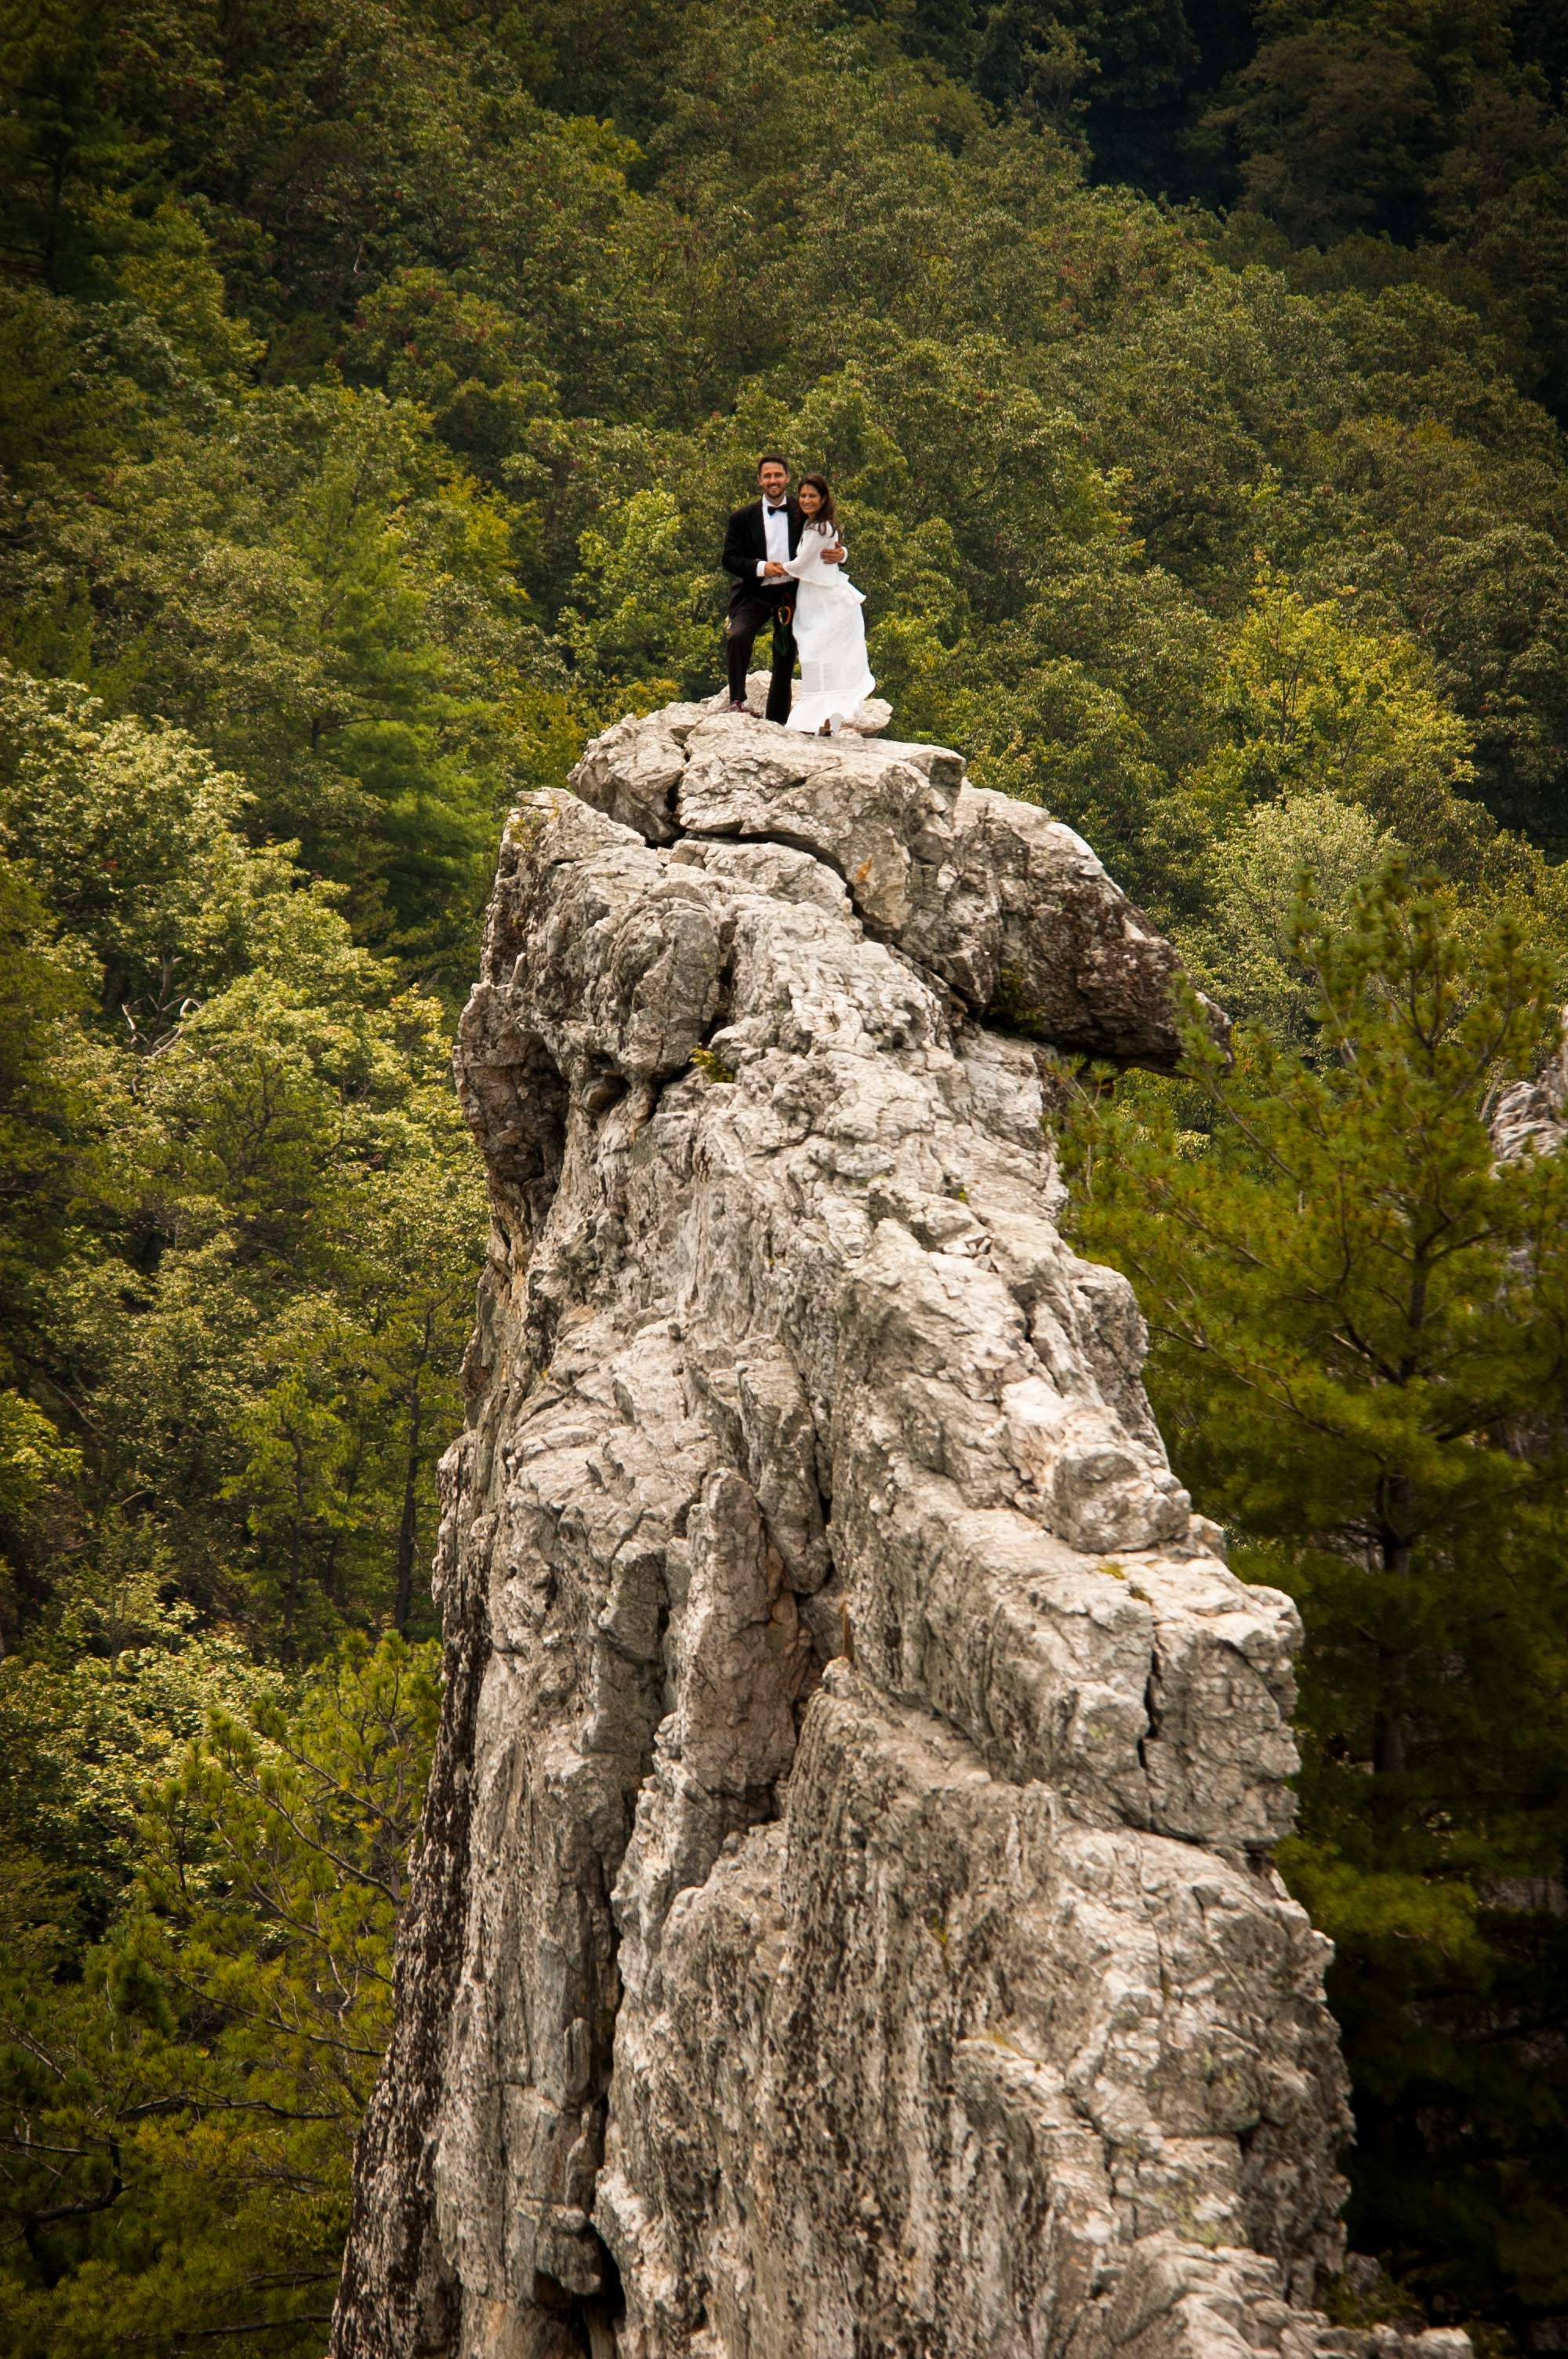 2012-08-28-mountainweddingphoto.jpeg